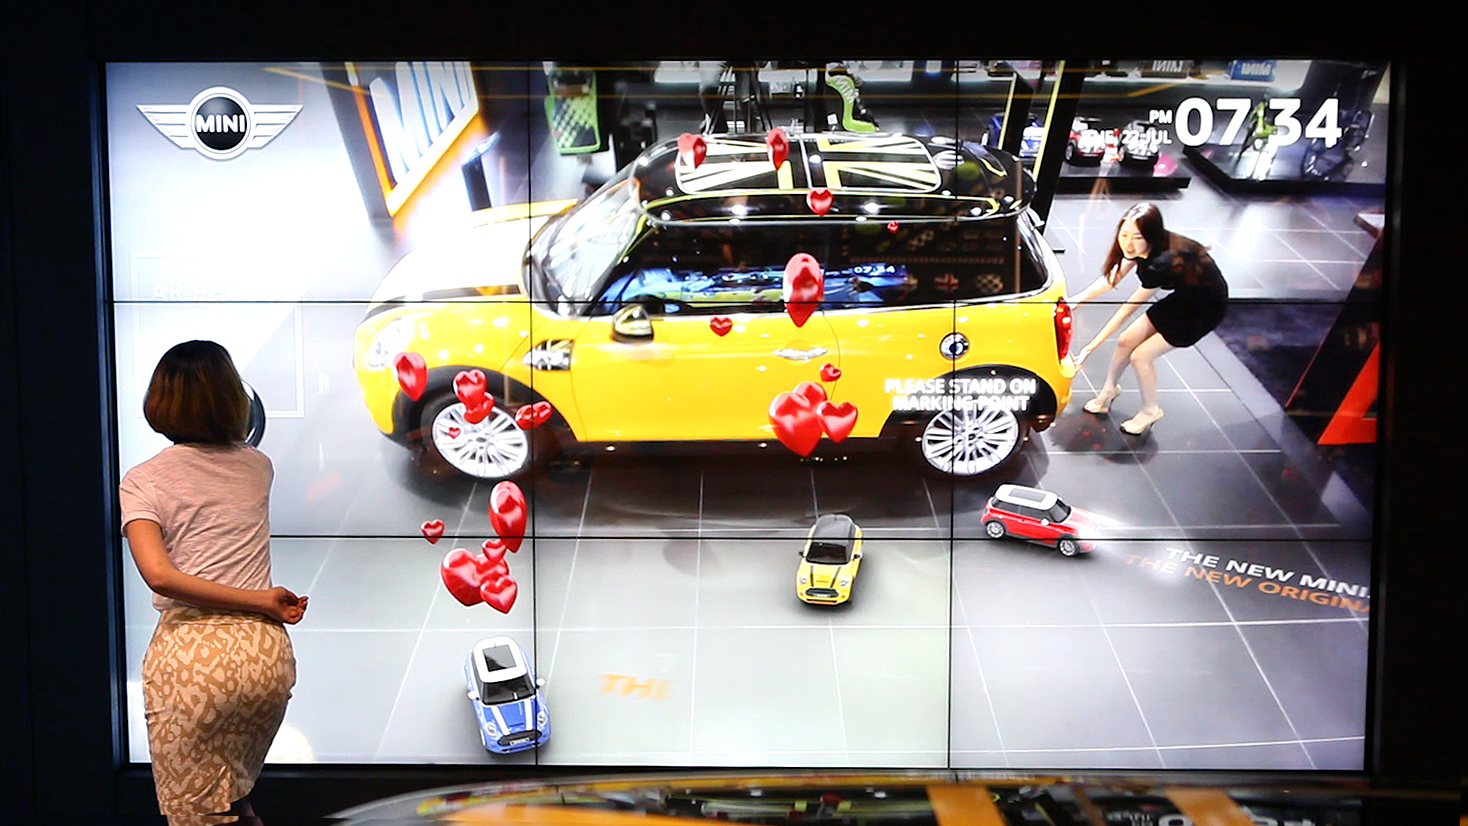 market mix for mini bmw Analysis of mini's current marketing strategy  know that today's  mini is a brand owned by the bmw group, which successfully brought their  legendary  gordon, r (2012) 're-thinking and re-tooling the social marketing  mix',.